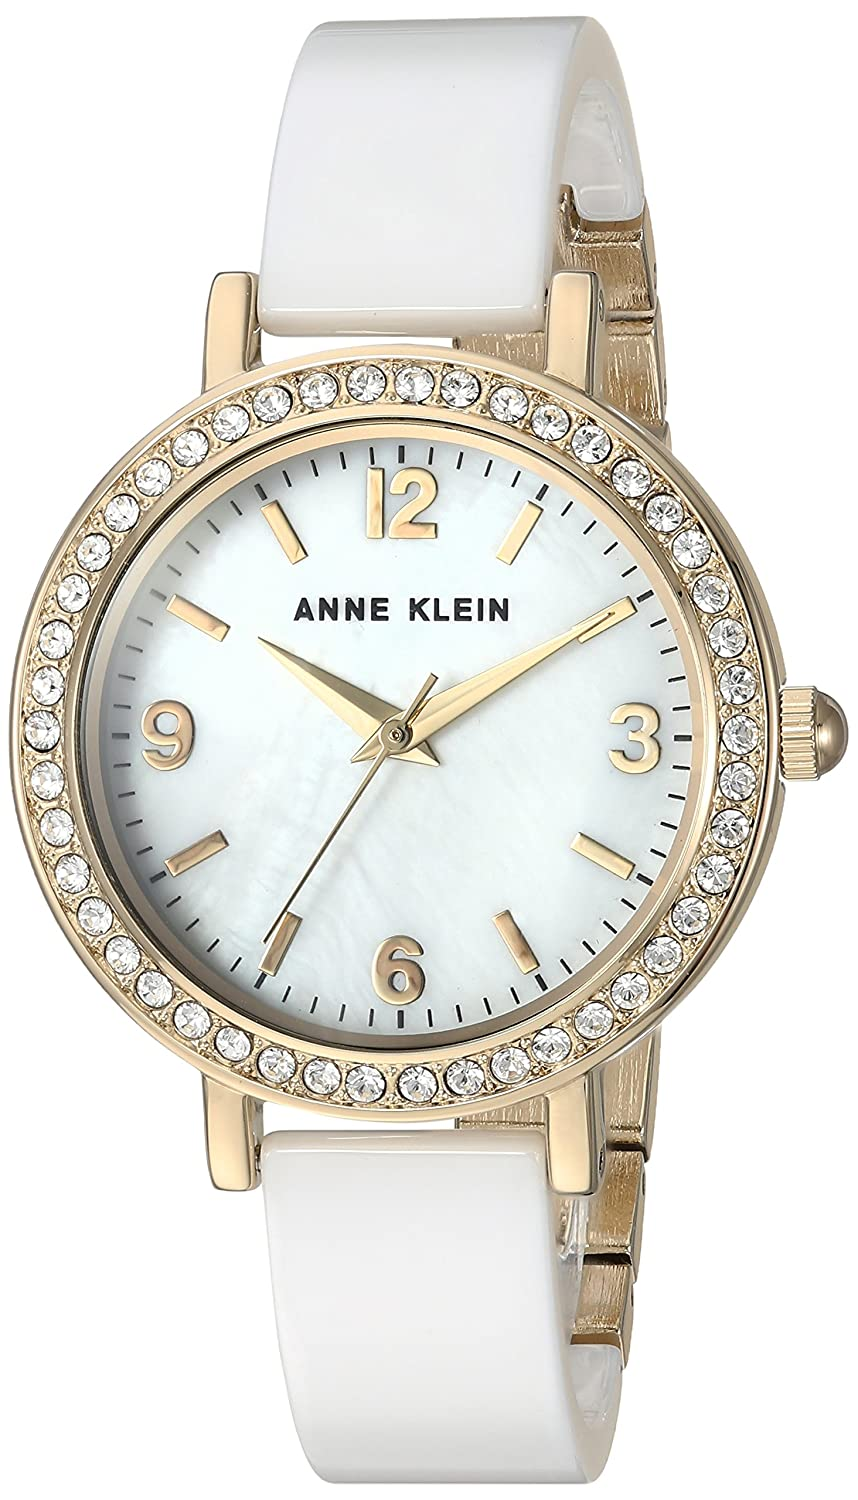 a46b10acf Amazon.com: Anne Klein Women's AK/2348WTDB Swarovski Crystal Accented Gold- Tone and White Ceramic Bangle Watch: Watches